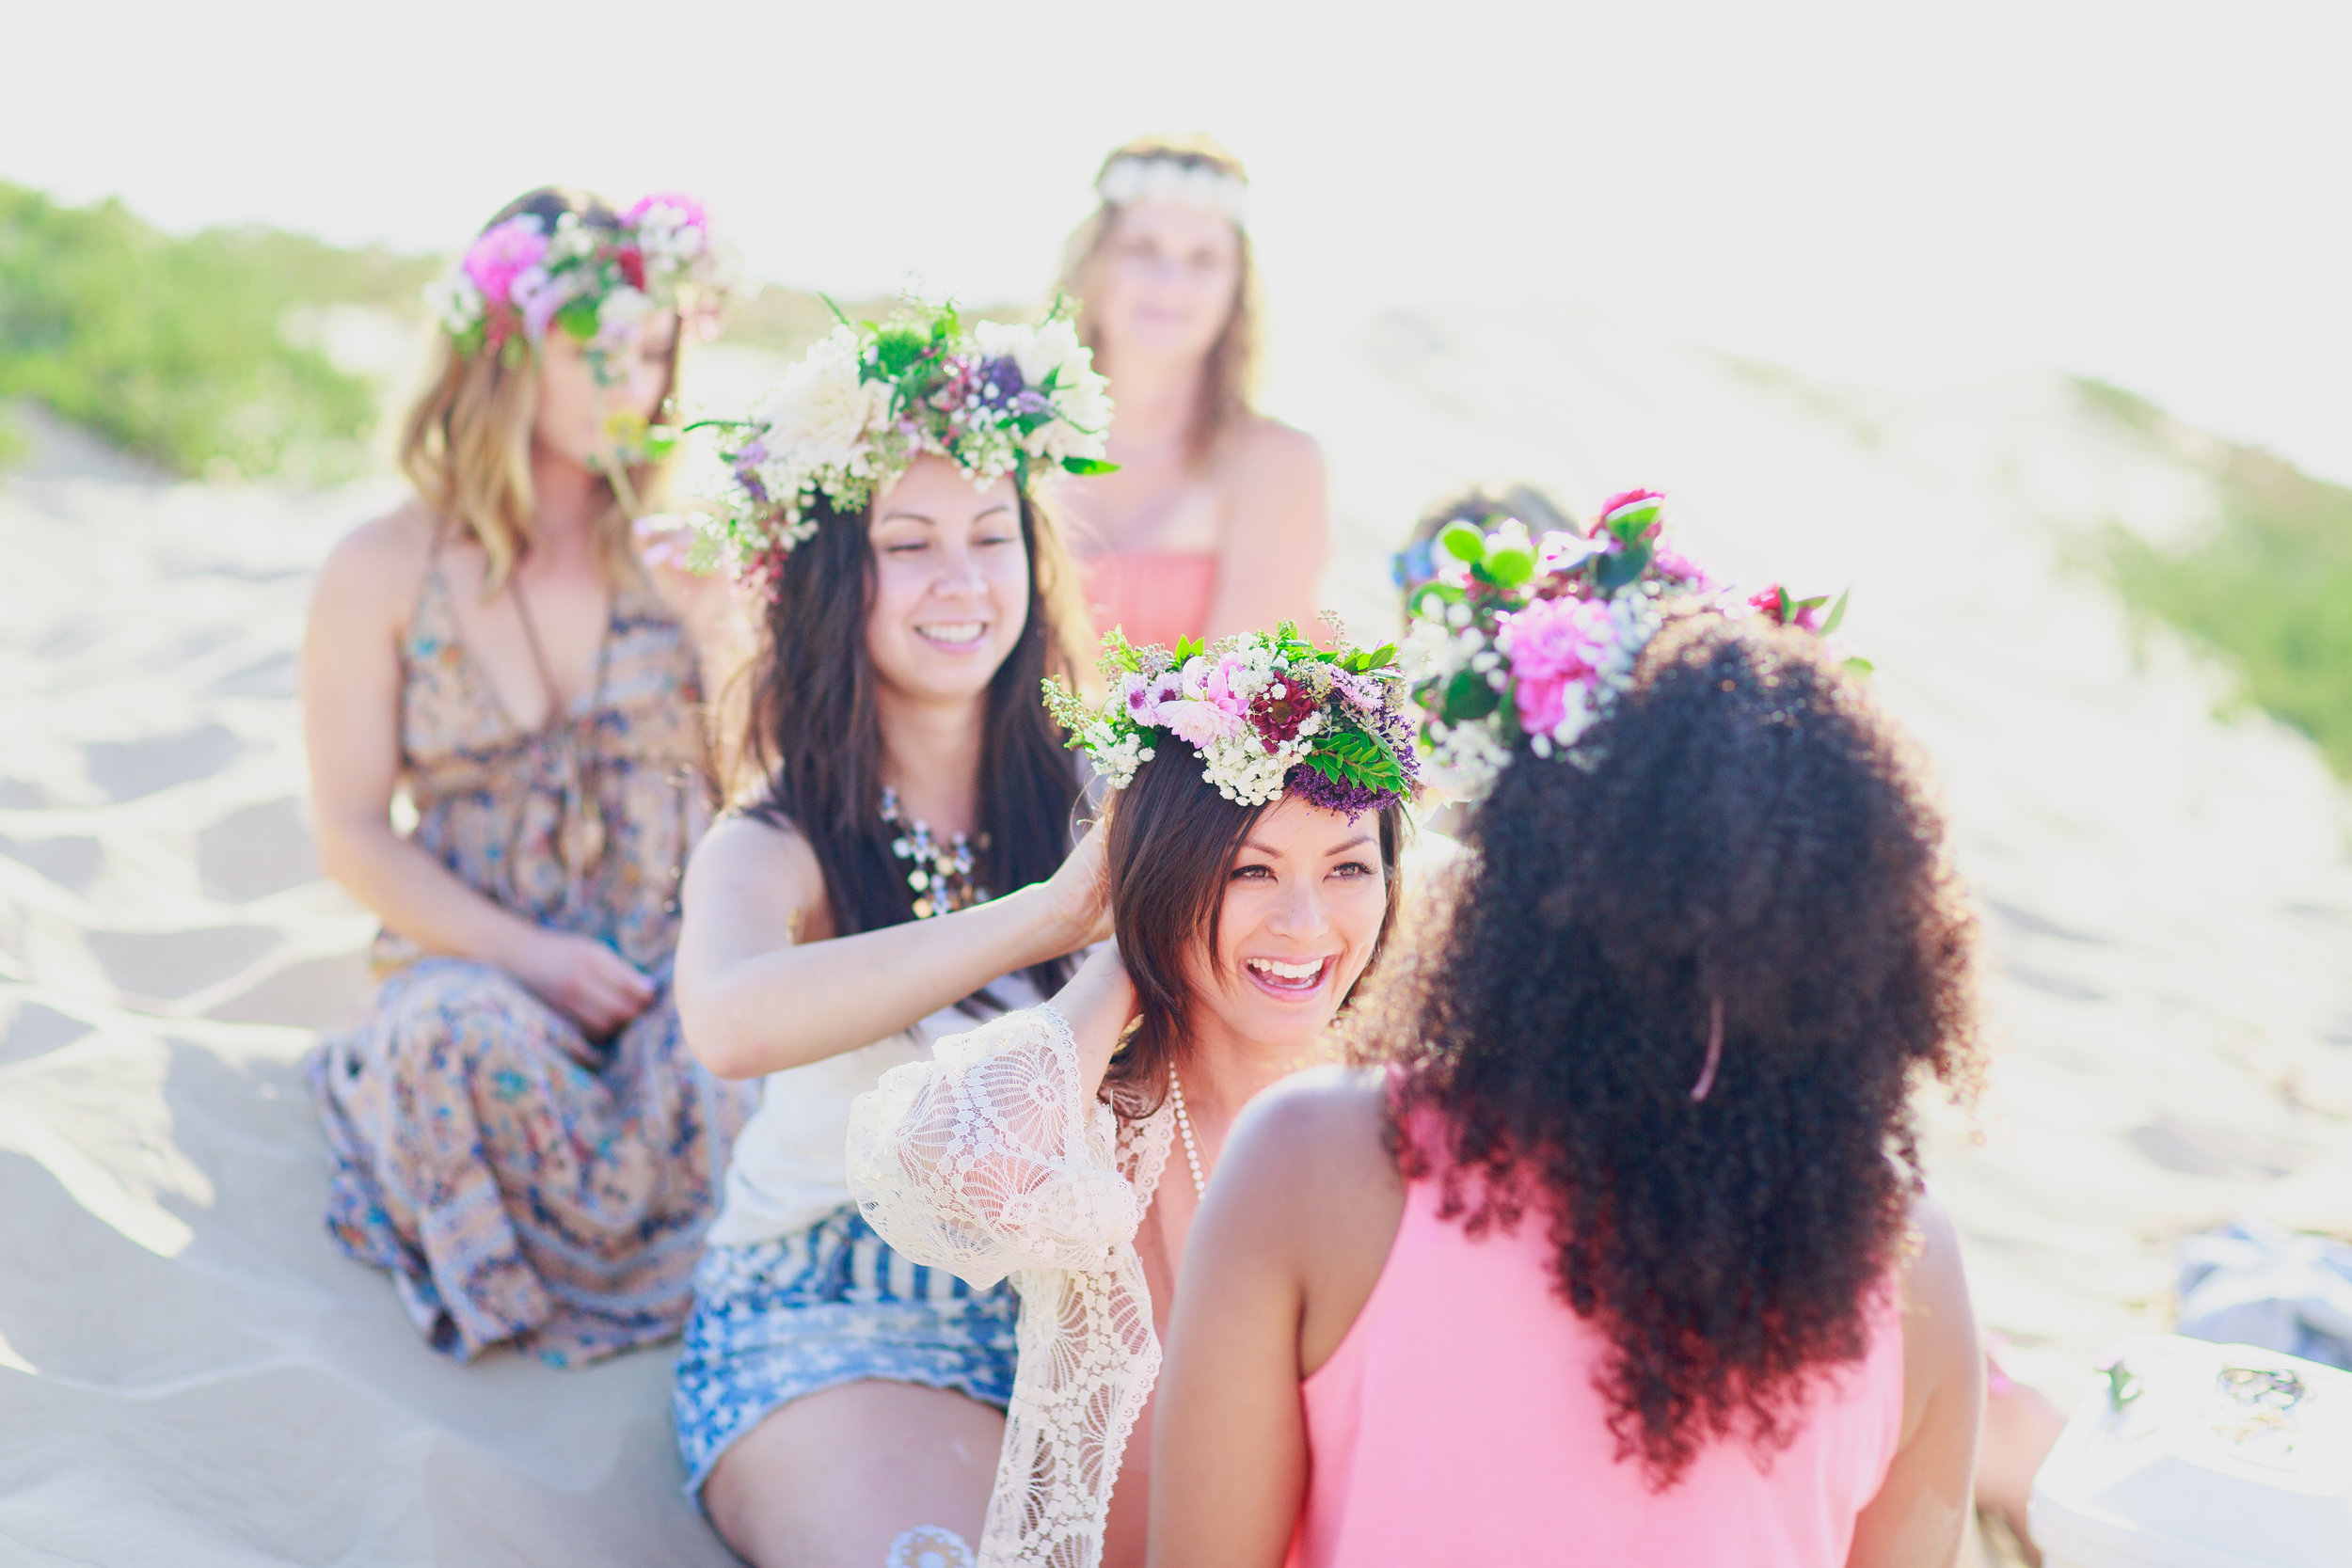 bridal party flower fun photo shoot